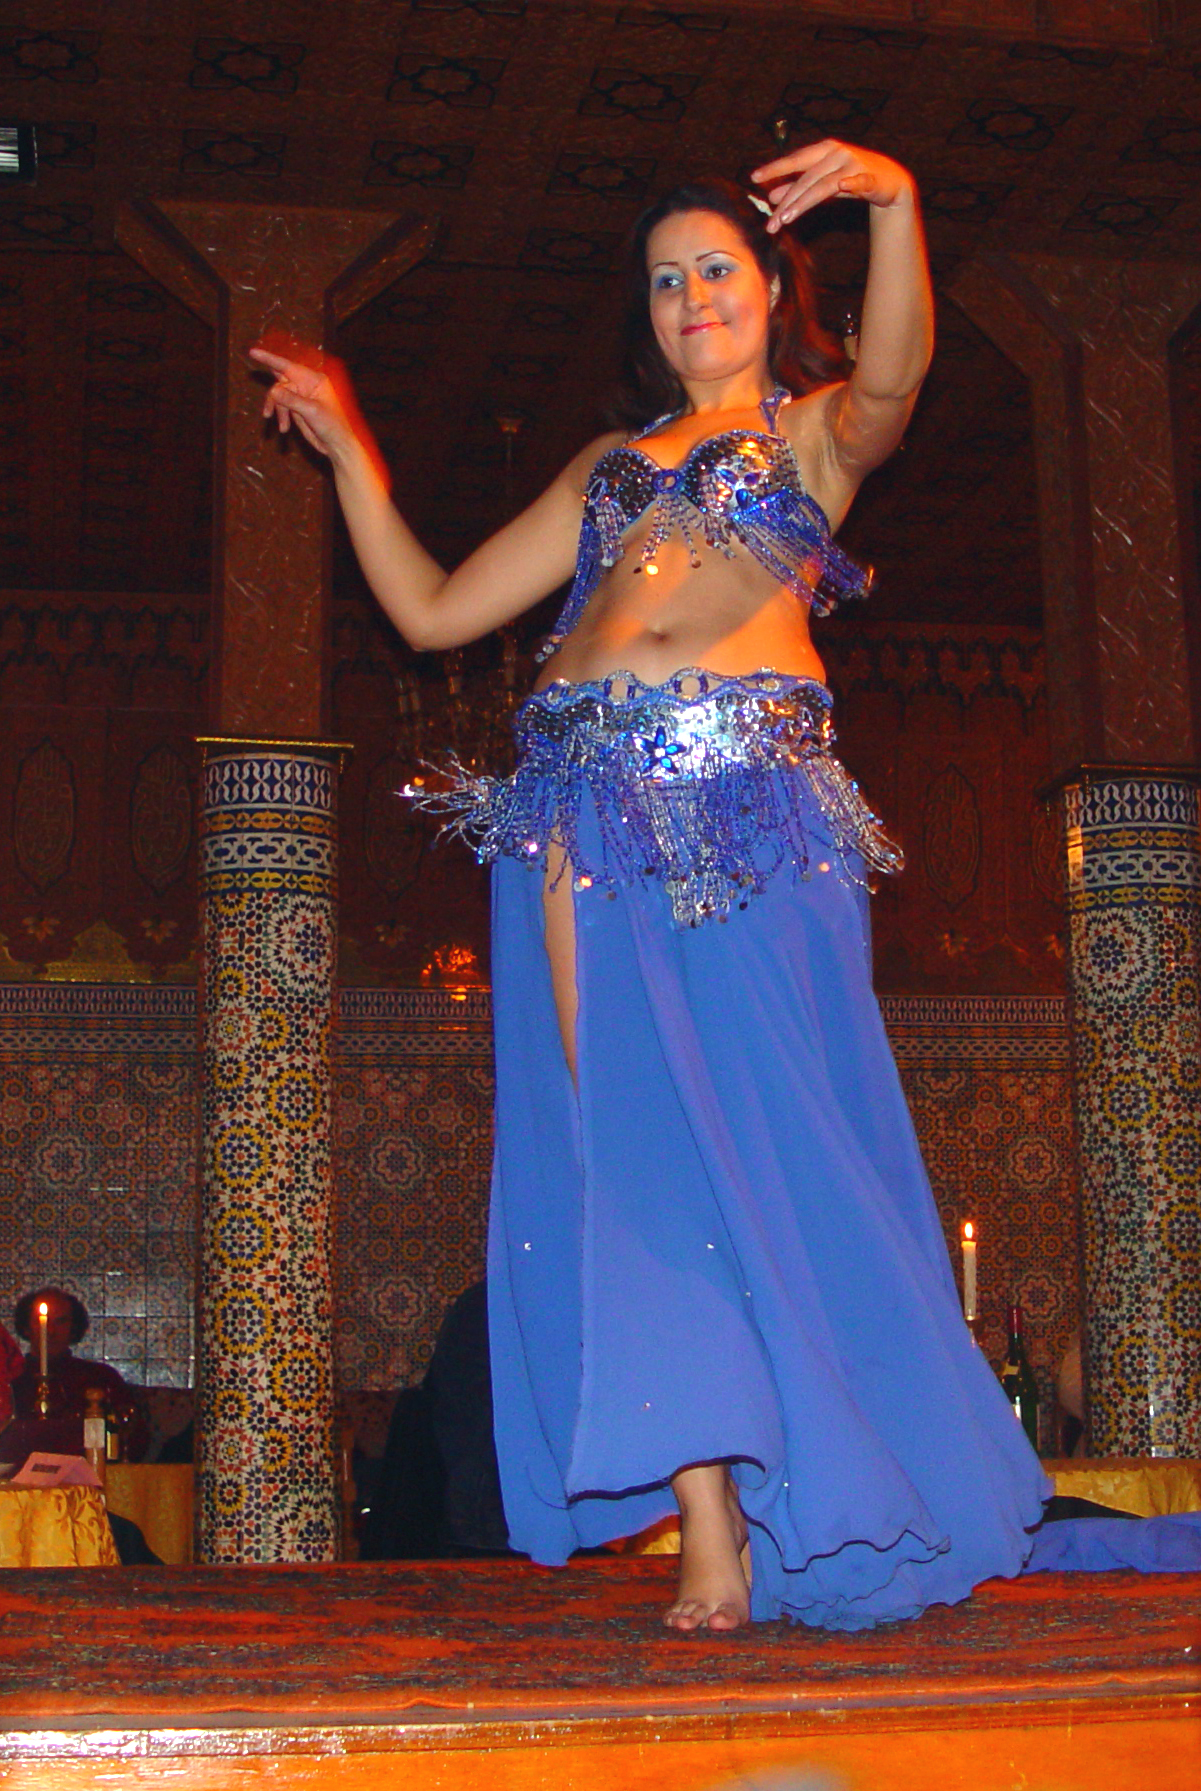 Description BellyDancerMarrakech.jpg